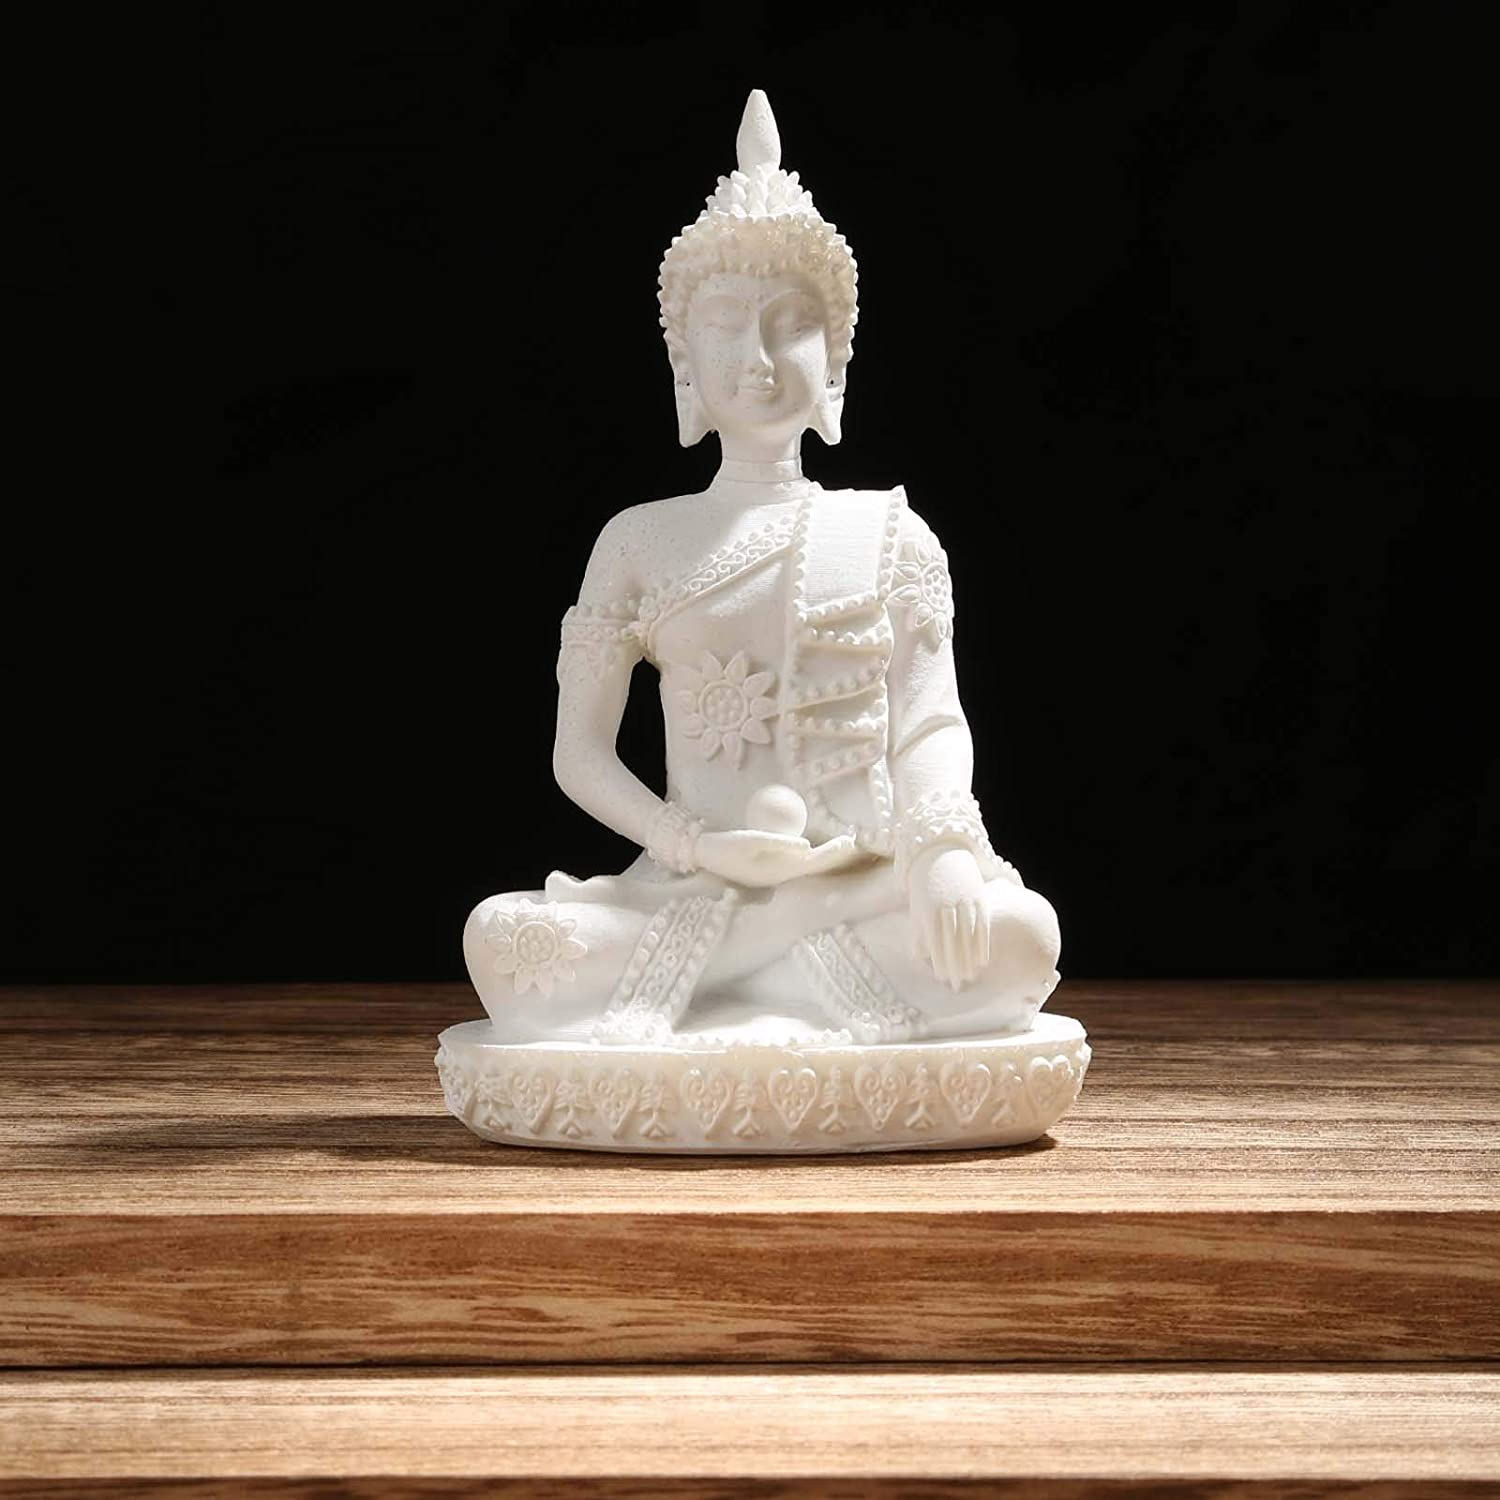 Carefree Fish Buddha Statue Minimalist Sandstone Decoration Zen Decor Bring Home a Ray of Sunshine 8Inch